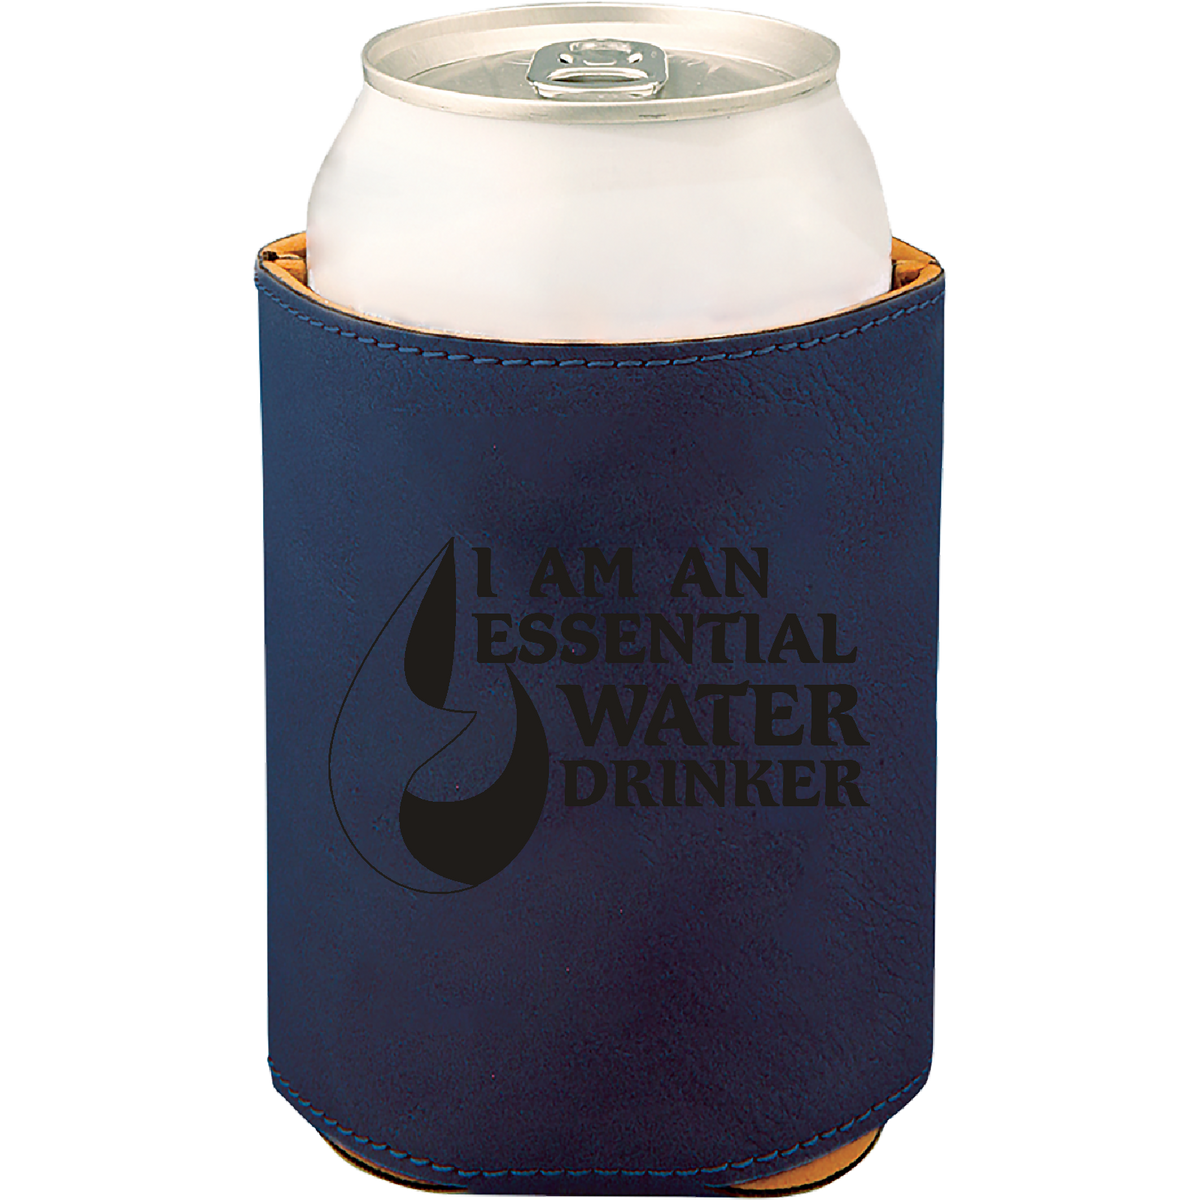 I'm an essential water drinker - Leatherette Beverage Holder